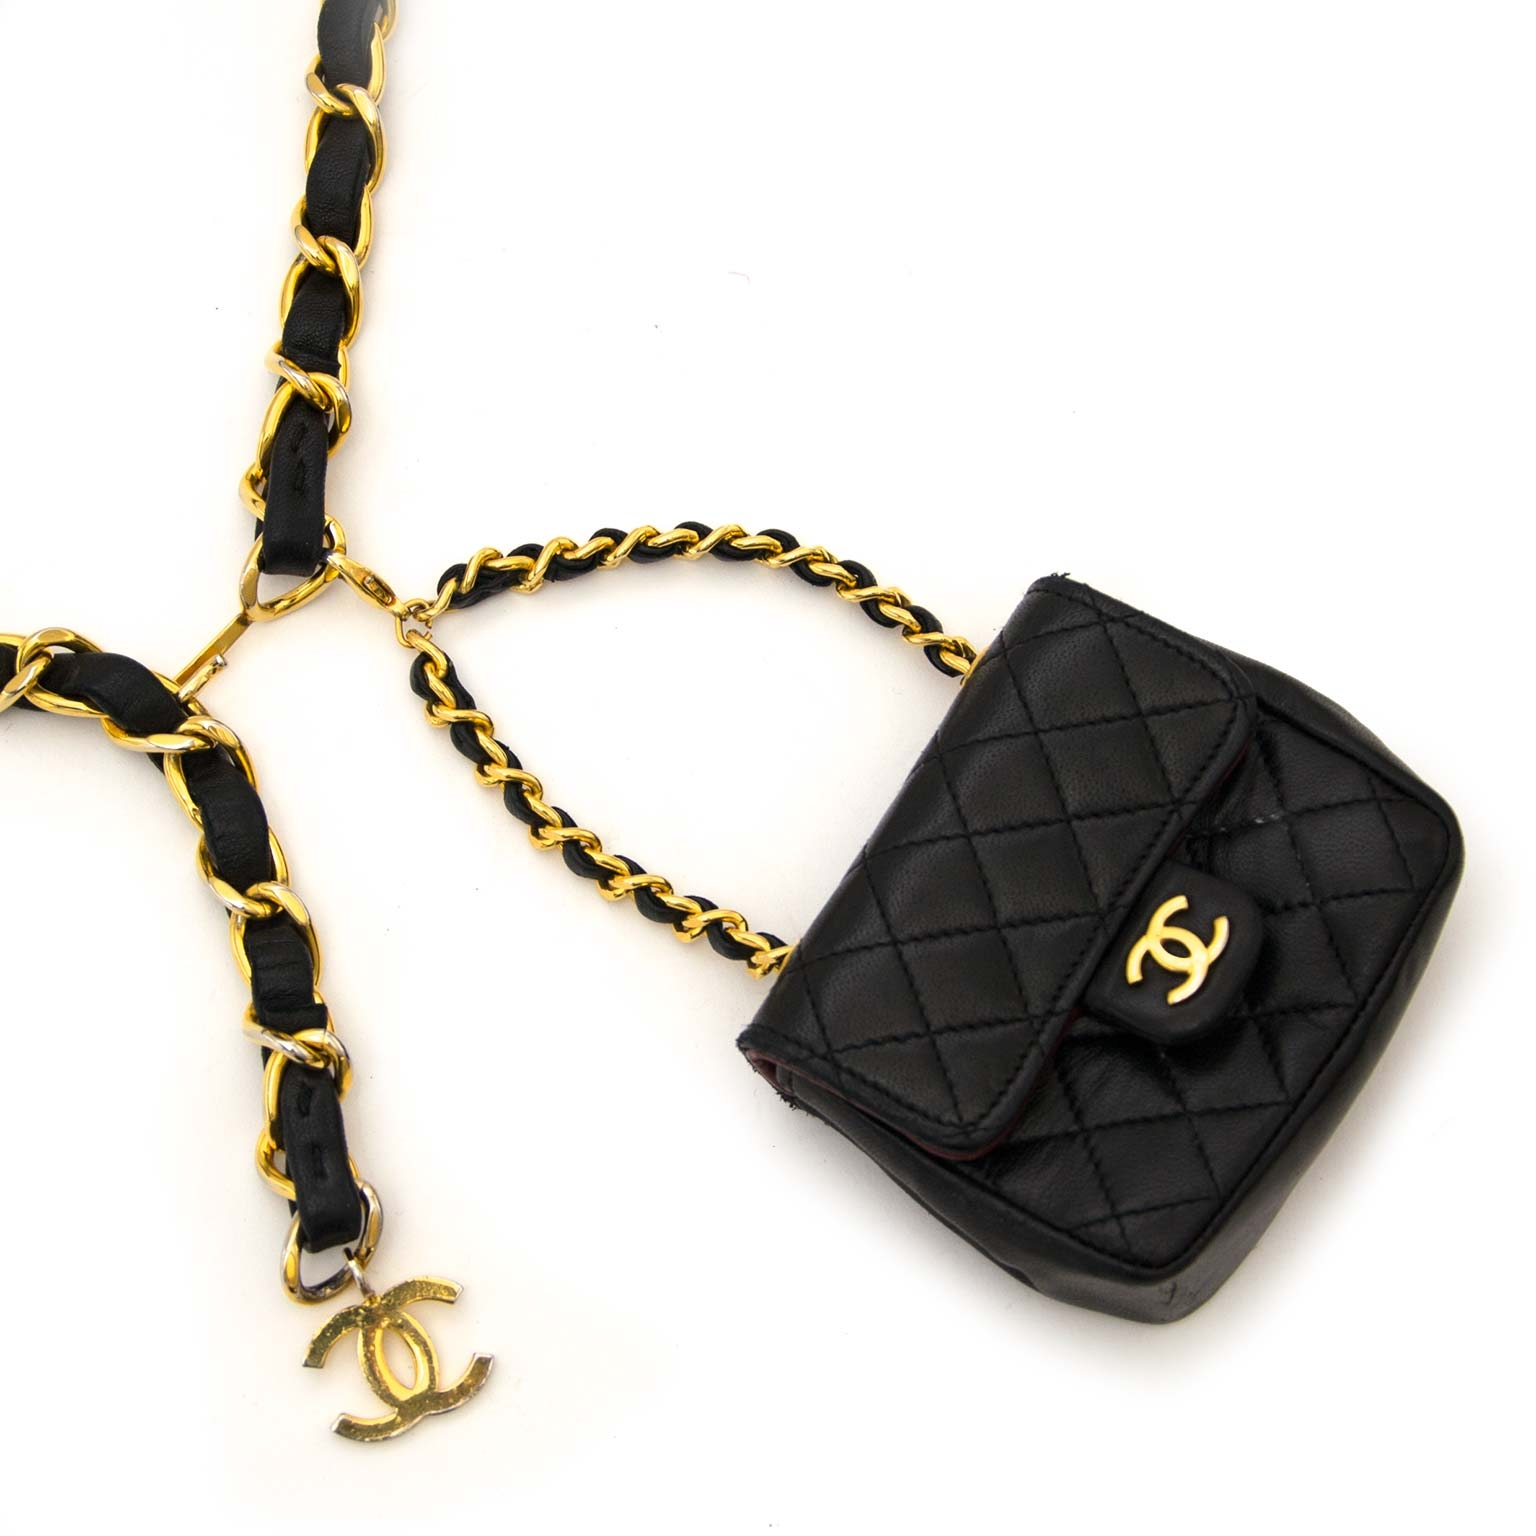 c90aa86e14cb ... Labellov Buy and sell your authentic Very Rare Chanel Quilted Mini  Chain Belt Bag for the best